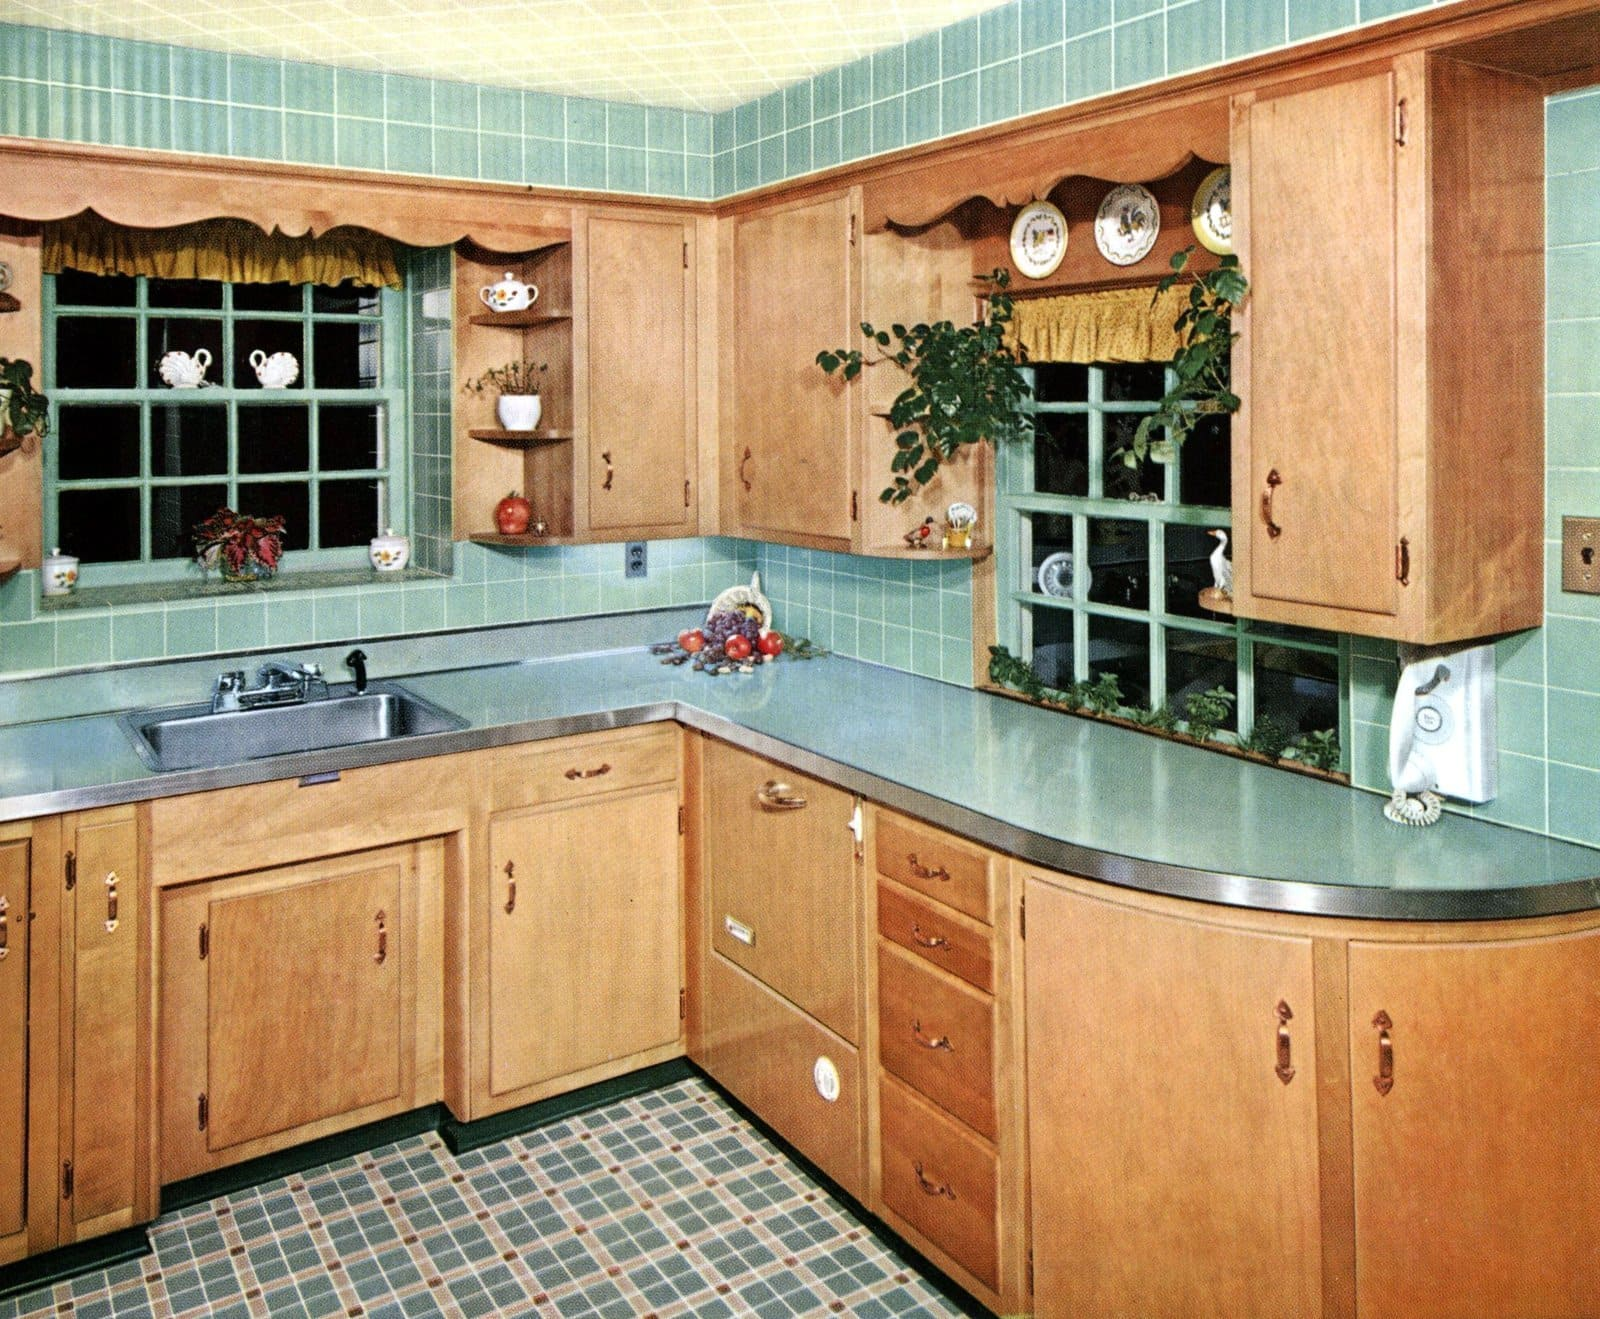 Retro 50s kitchen with wall and floor tile